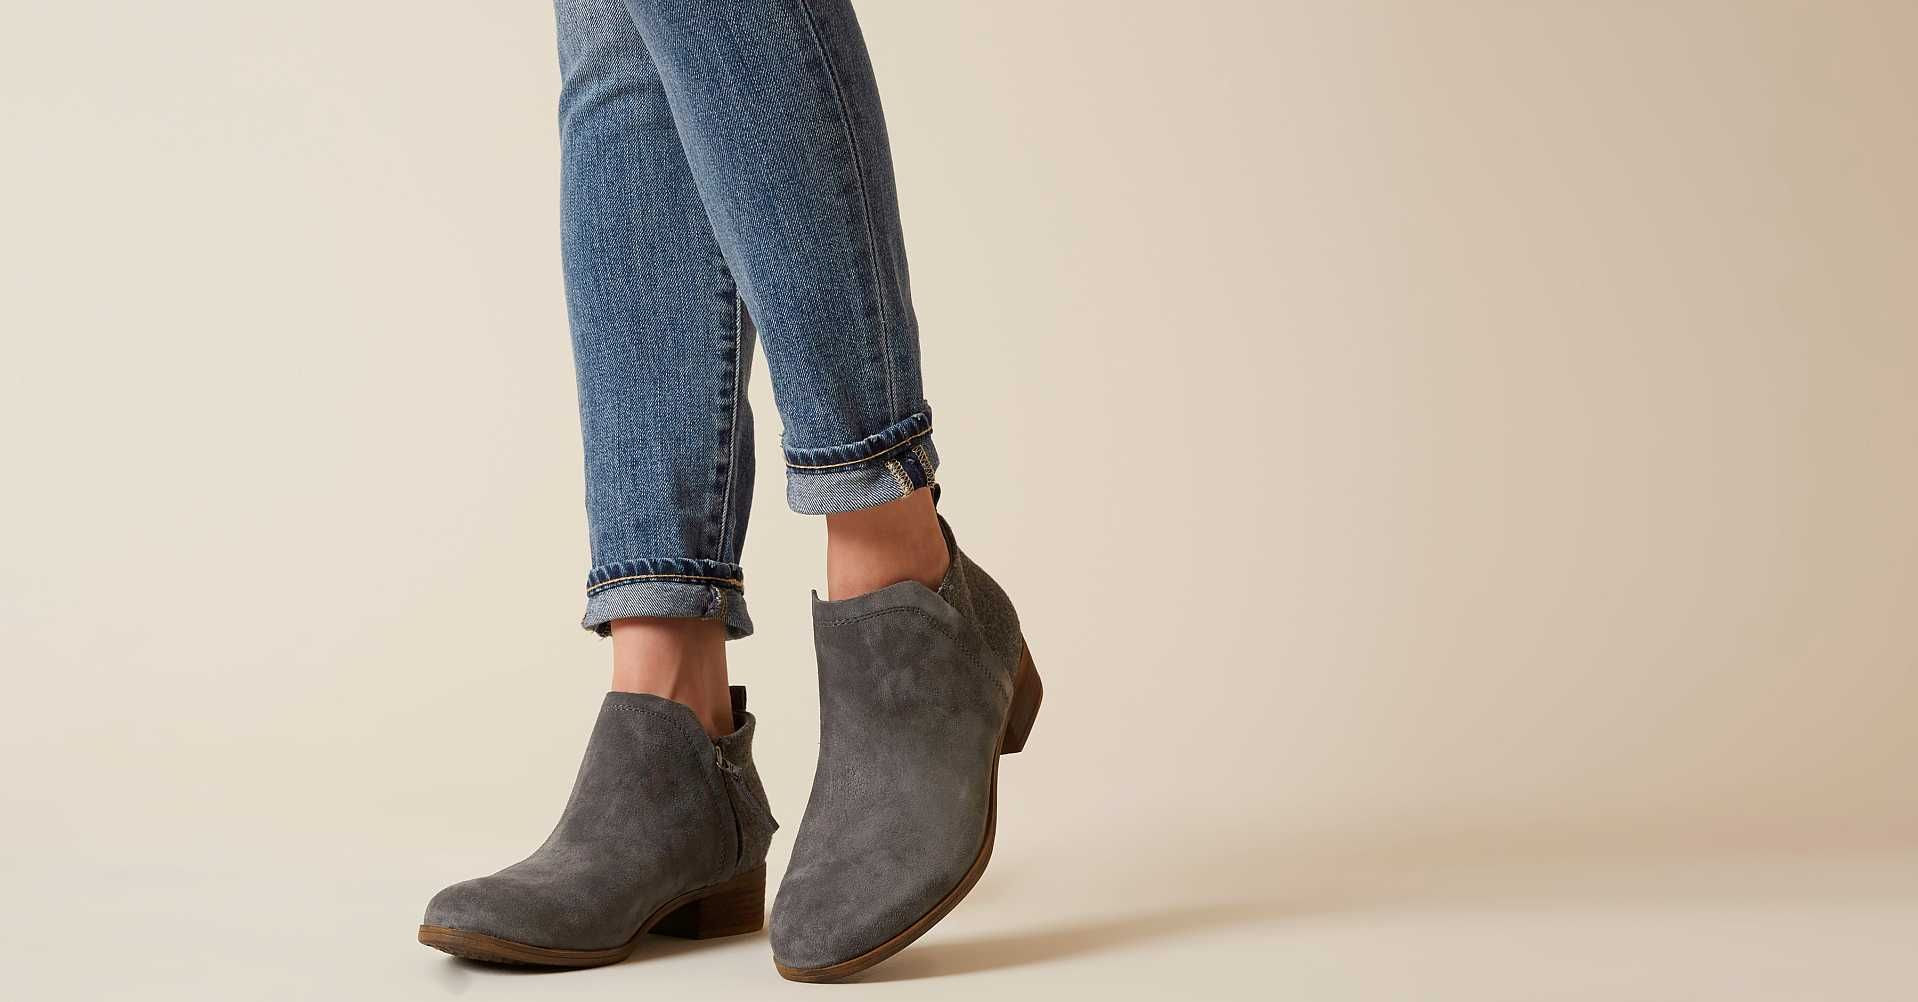 TOMS Deia Ankle Boot - Women's Shoes in